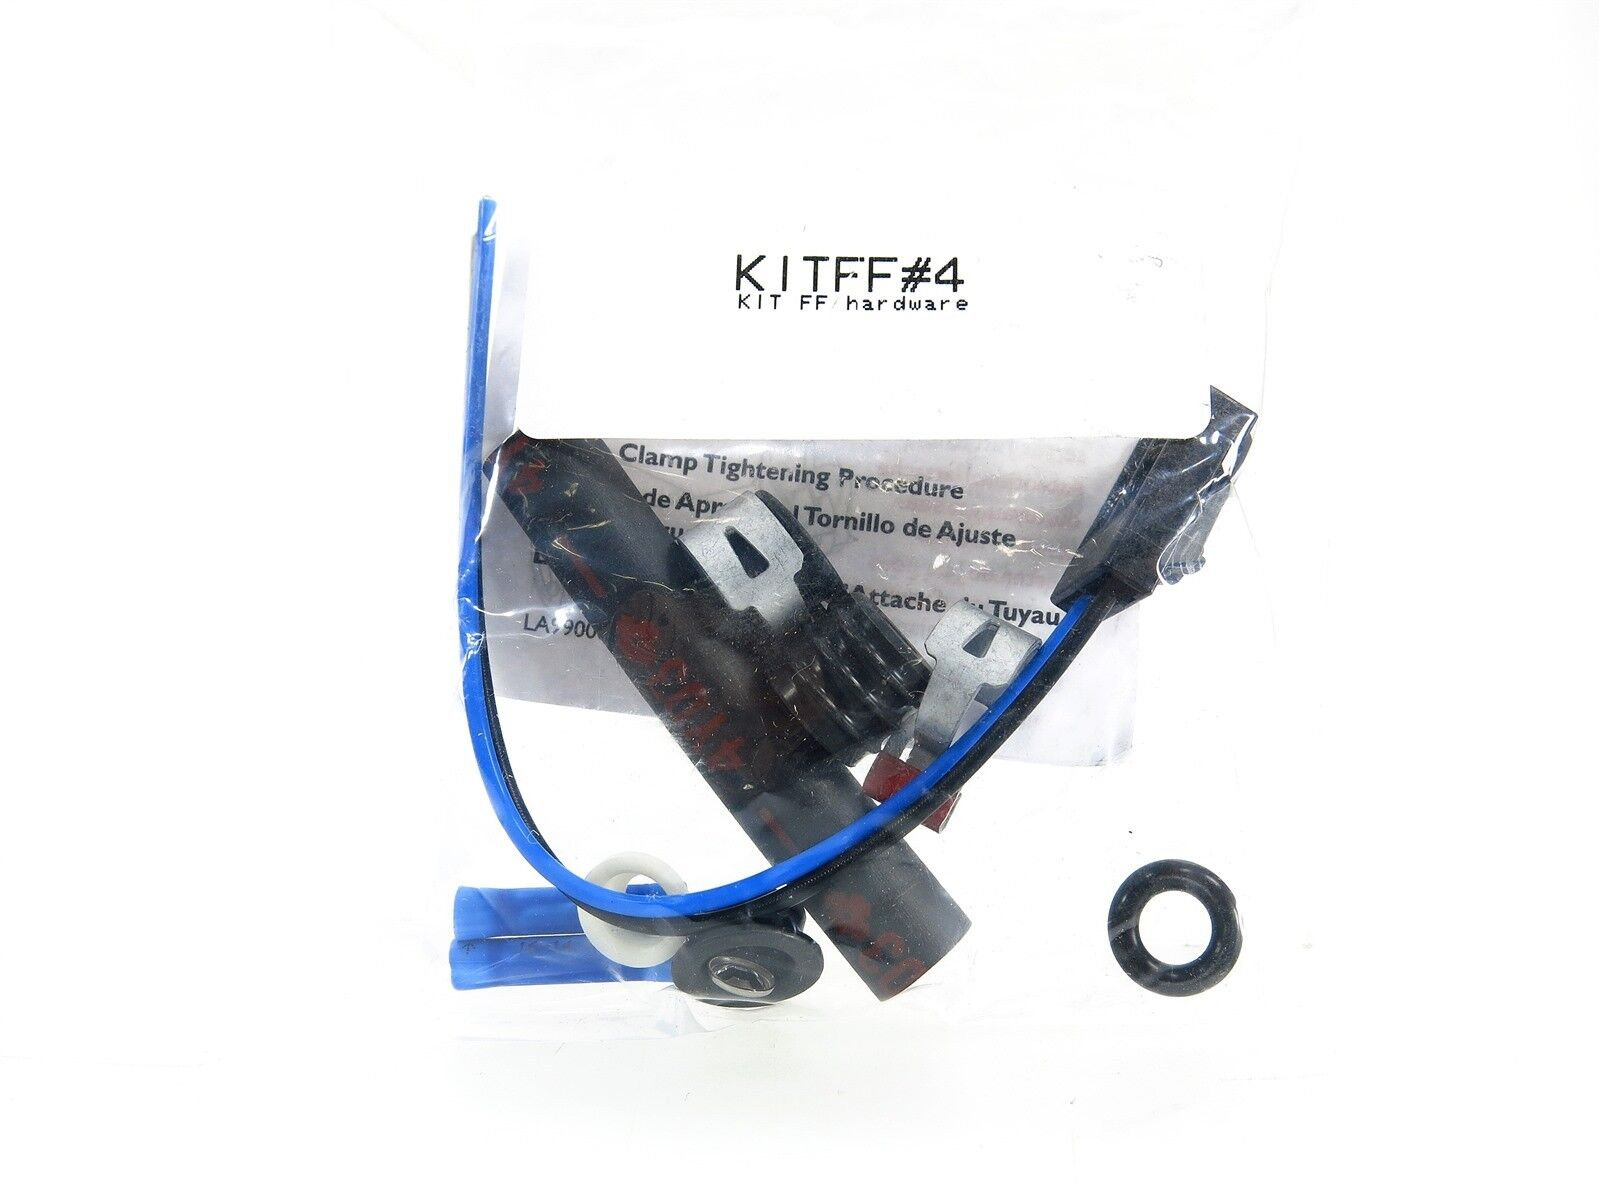 DENSO 950-0129 Fuel Pump Kit for 00-06 SENTRA 99-05 ECLIPSE 98-03 GALANT